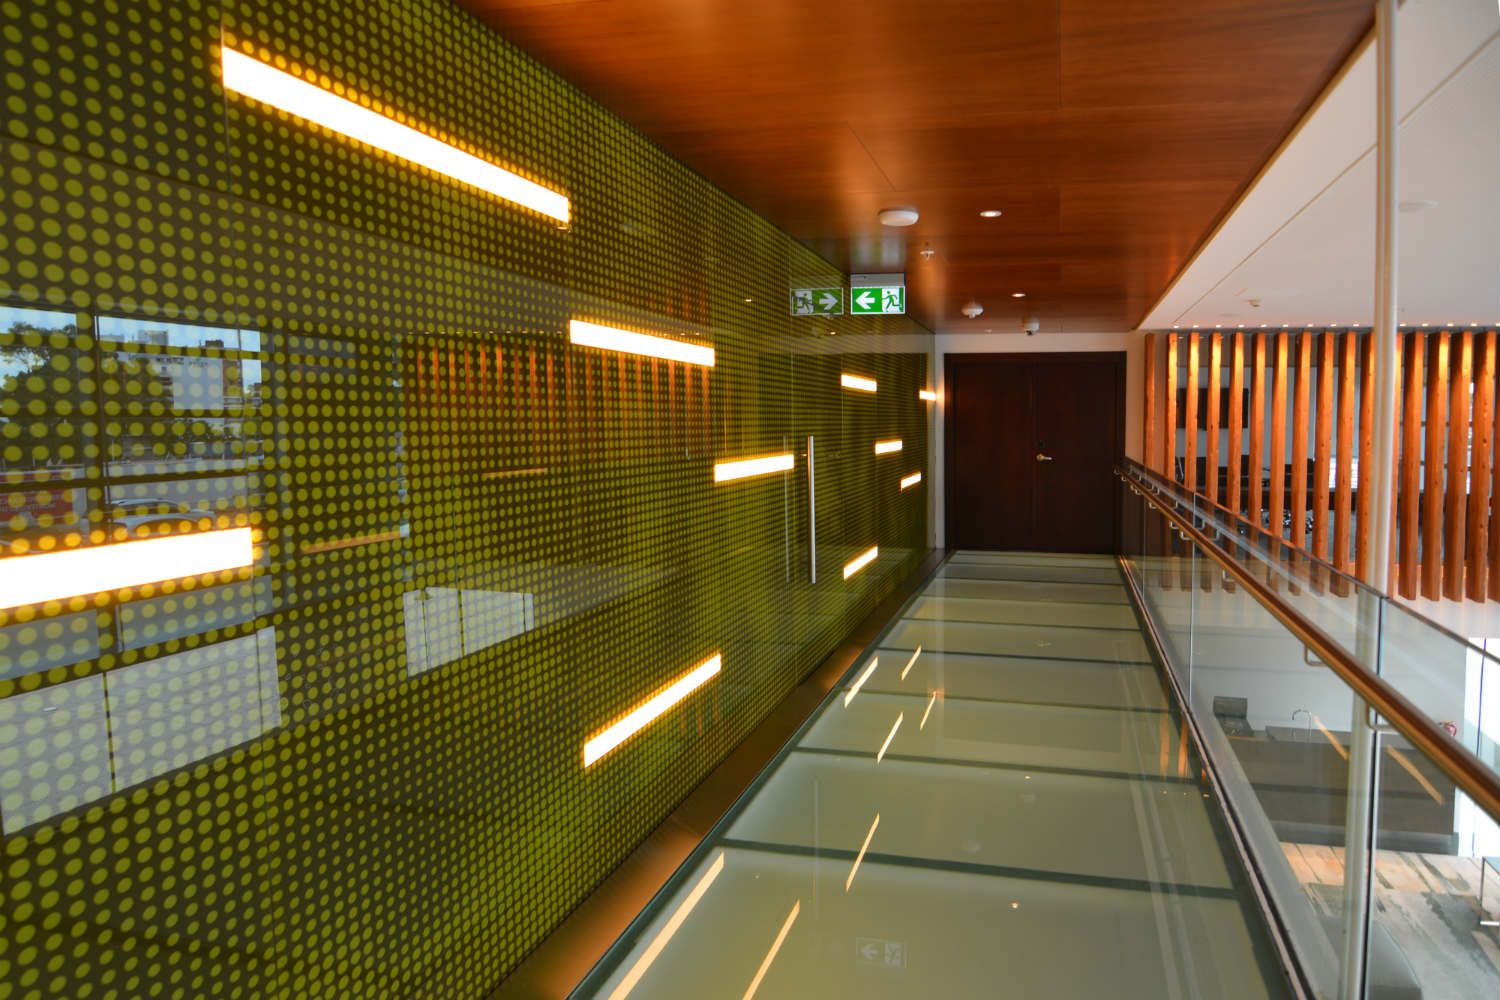 Hilton Garden Inn in Montevideo, Uruguay. Invisible acoustics designed and install by WSDG - WSDG Latin, Sergio Molho and Silvia Molho. Hallway